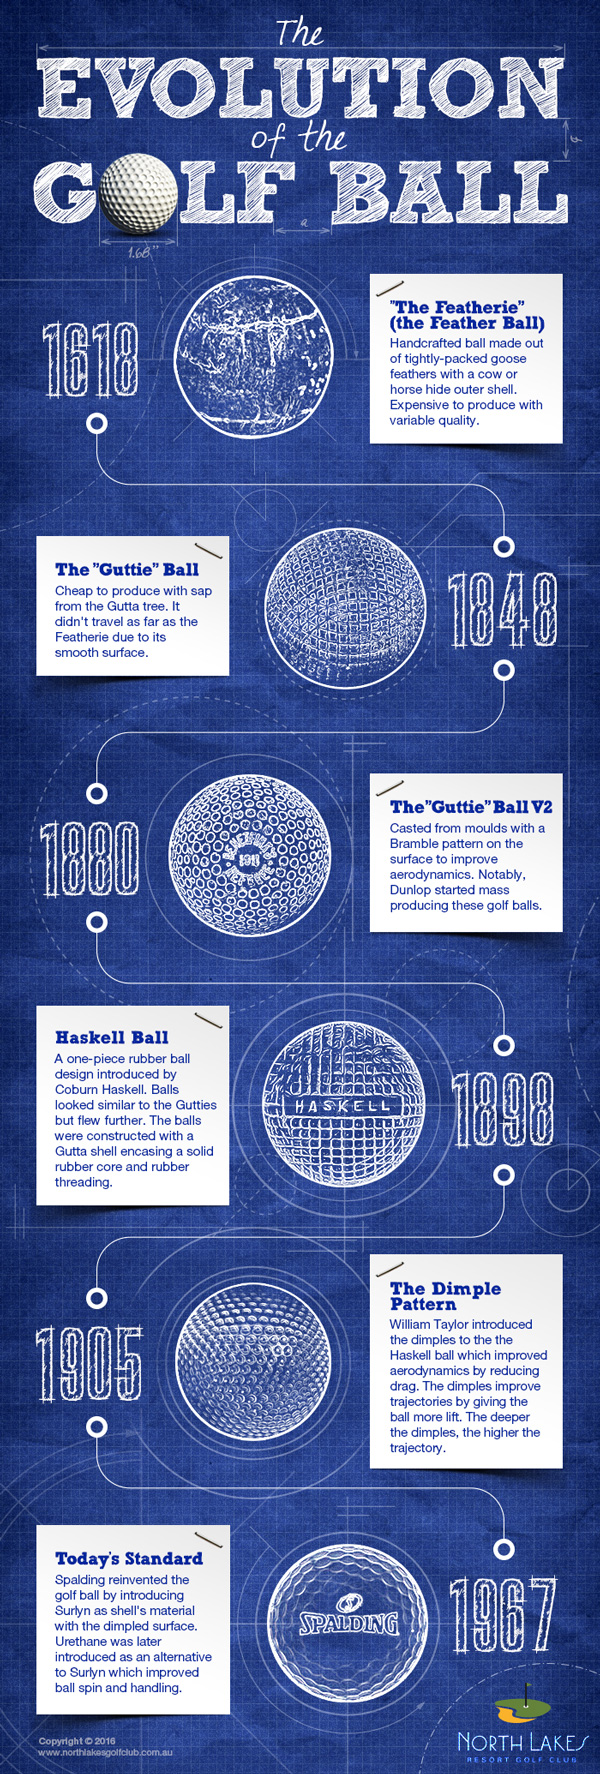 The Evolution Of The Golf Ball